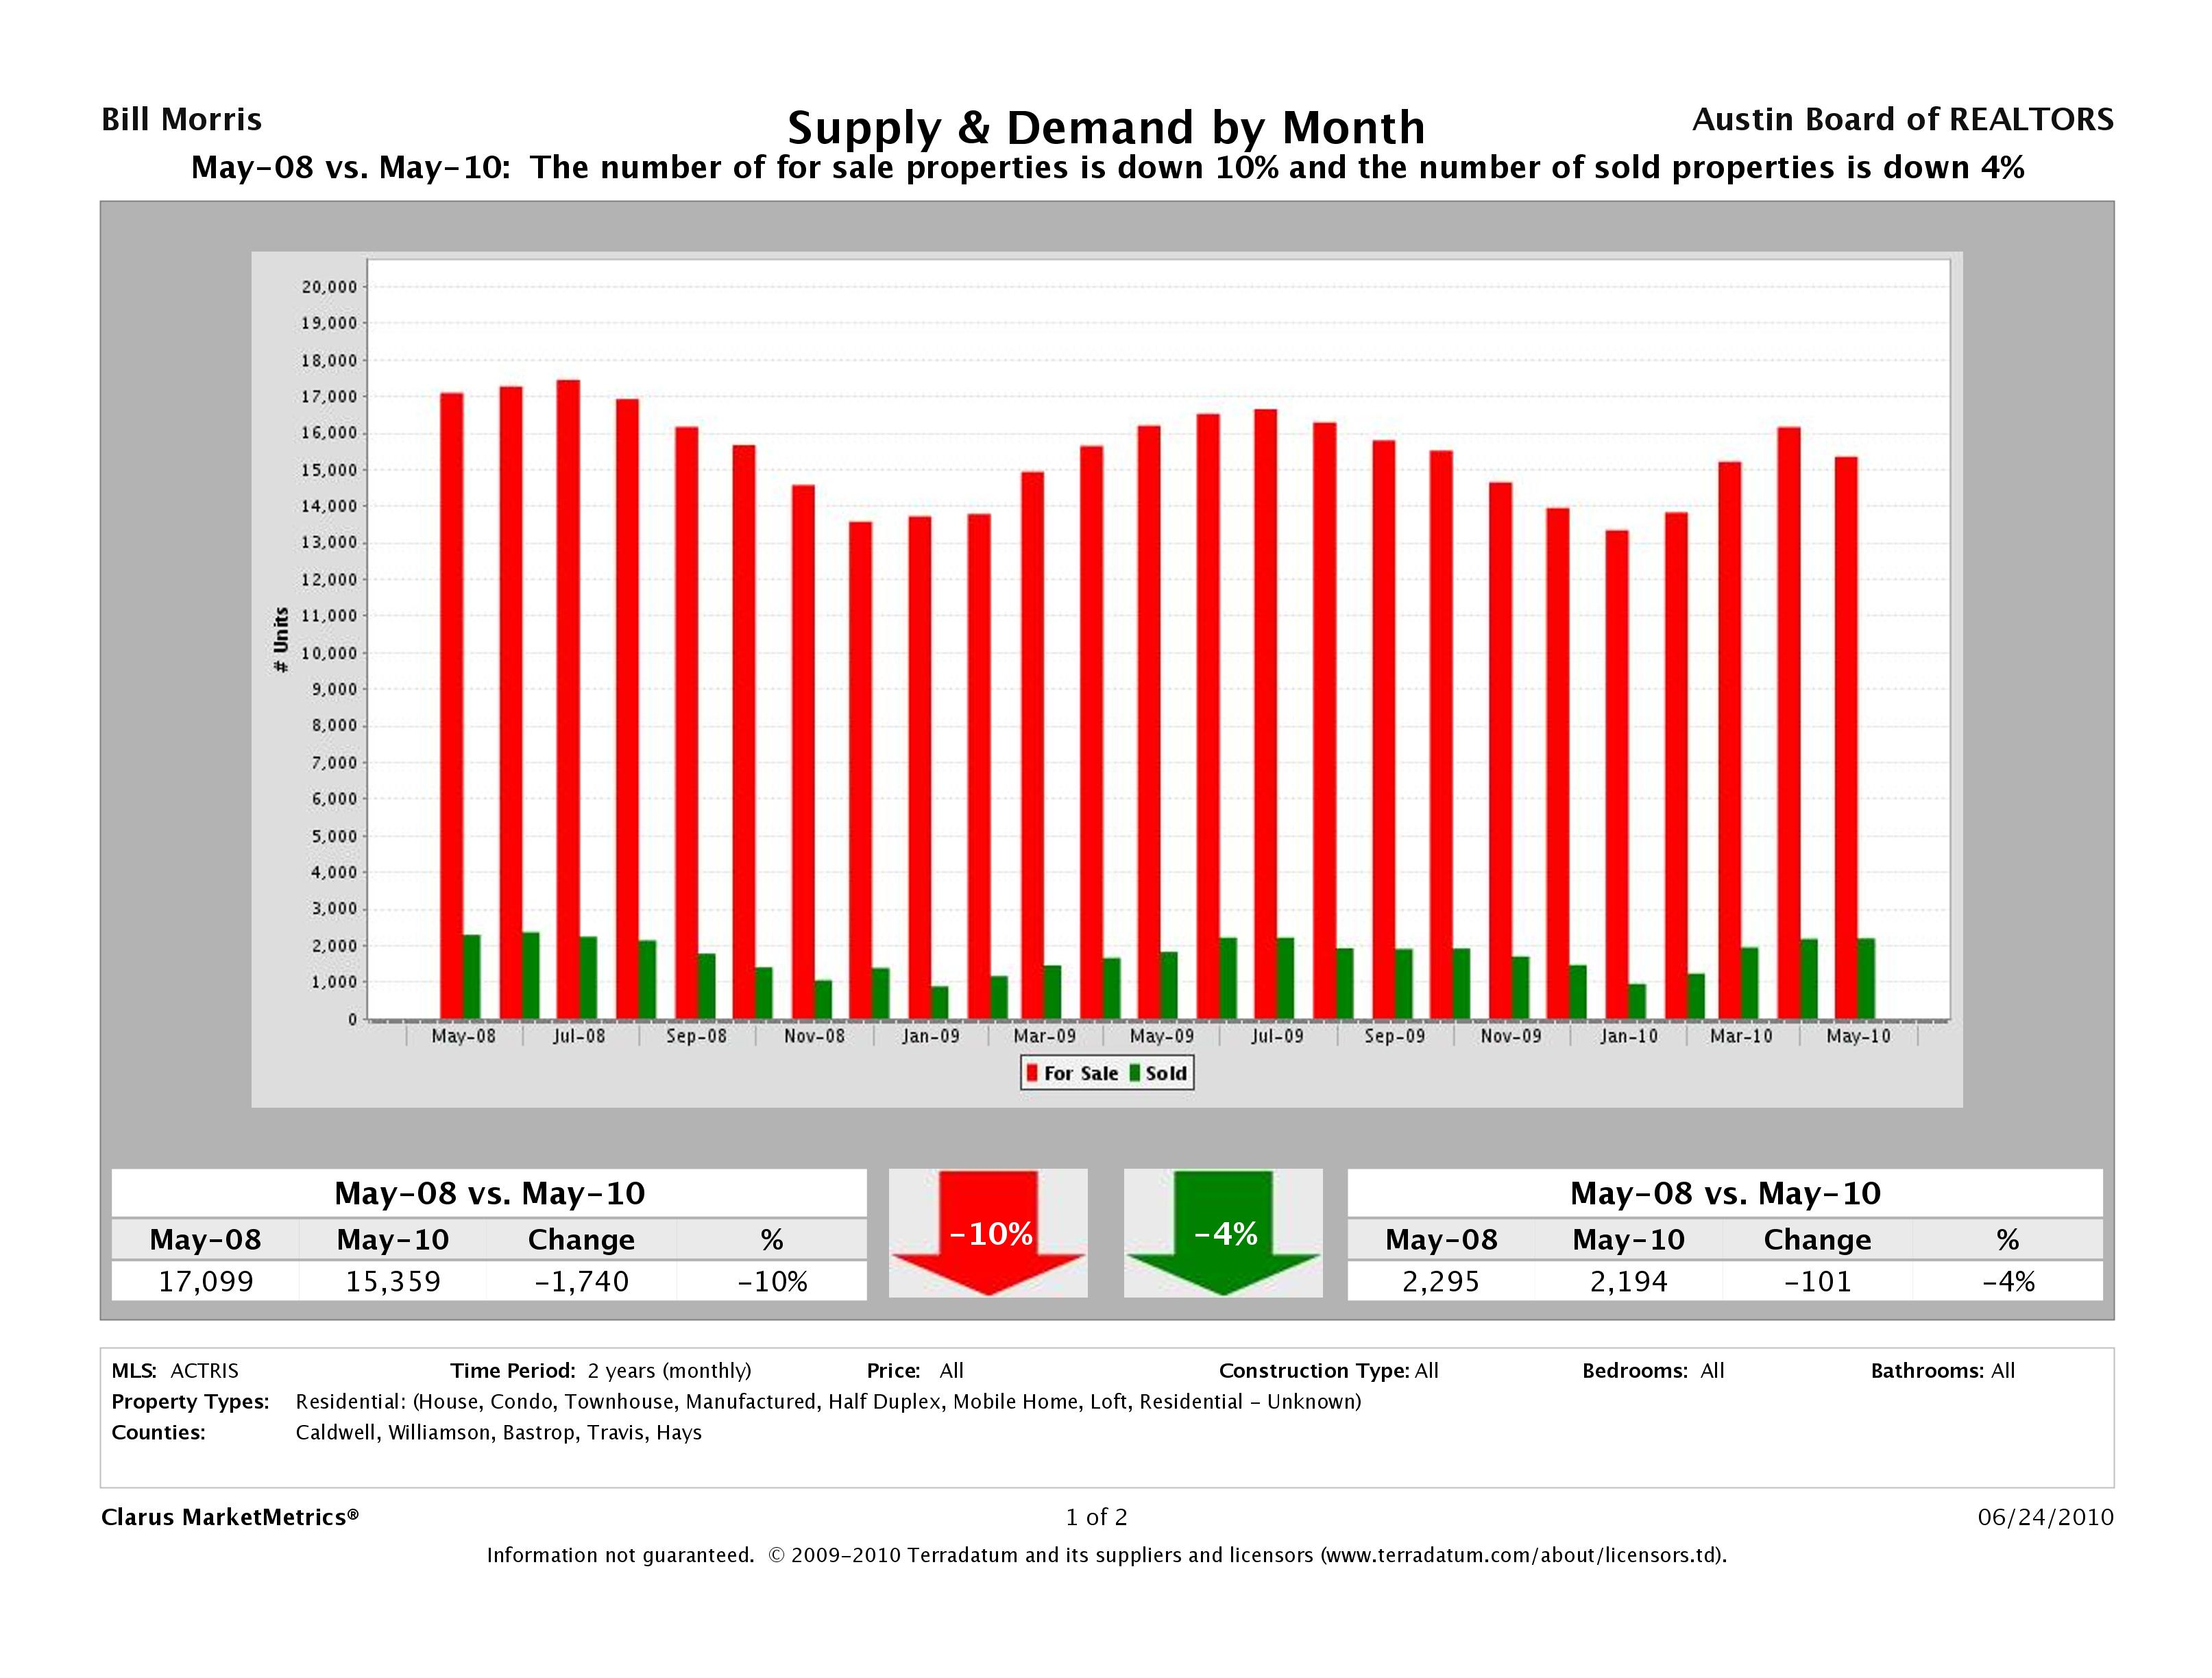 Austin Residential Supply and Demand